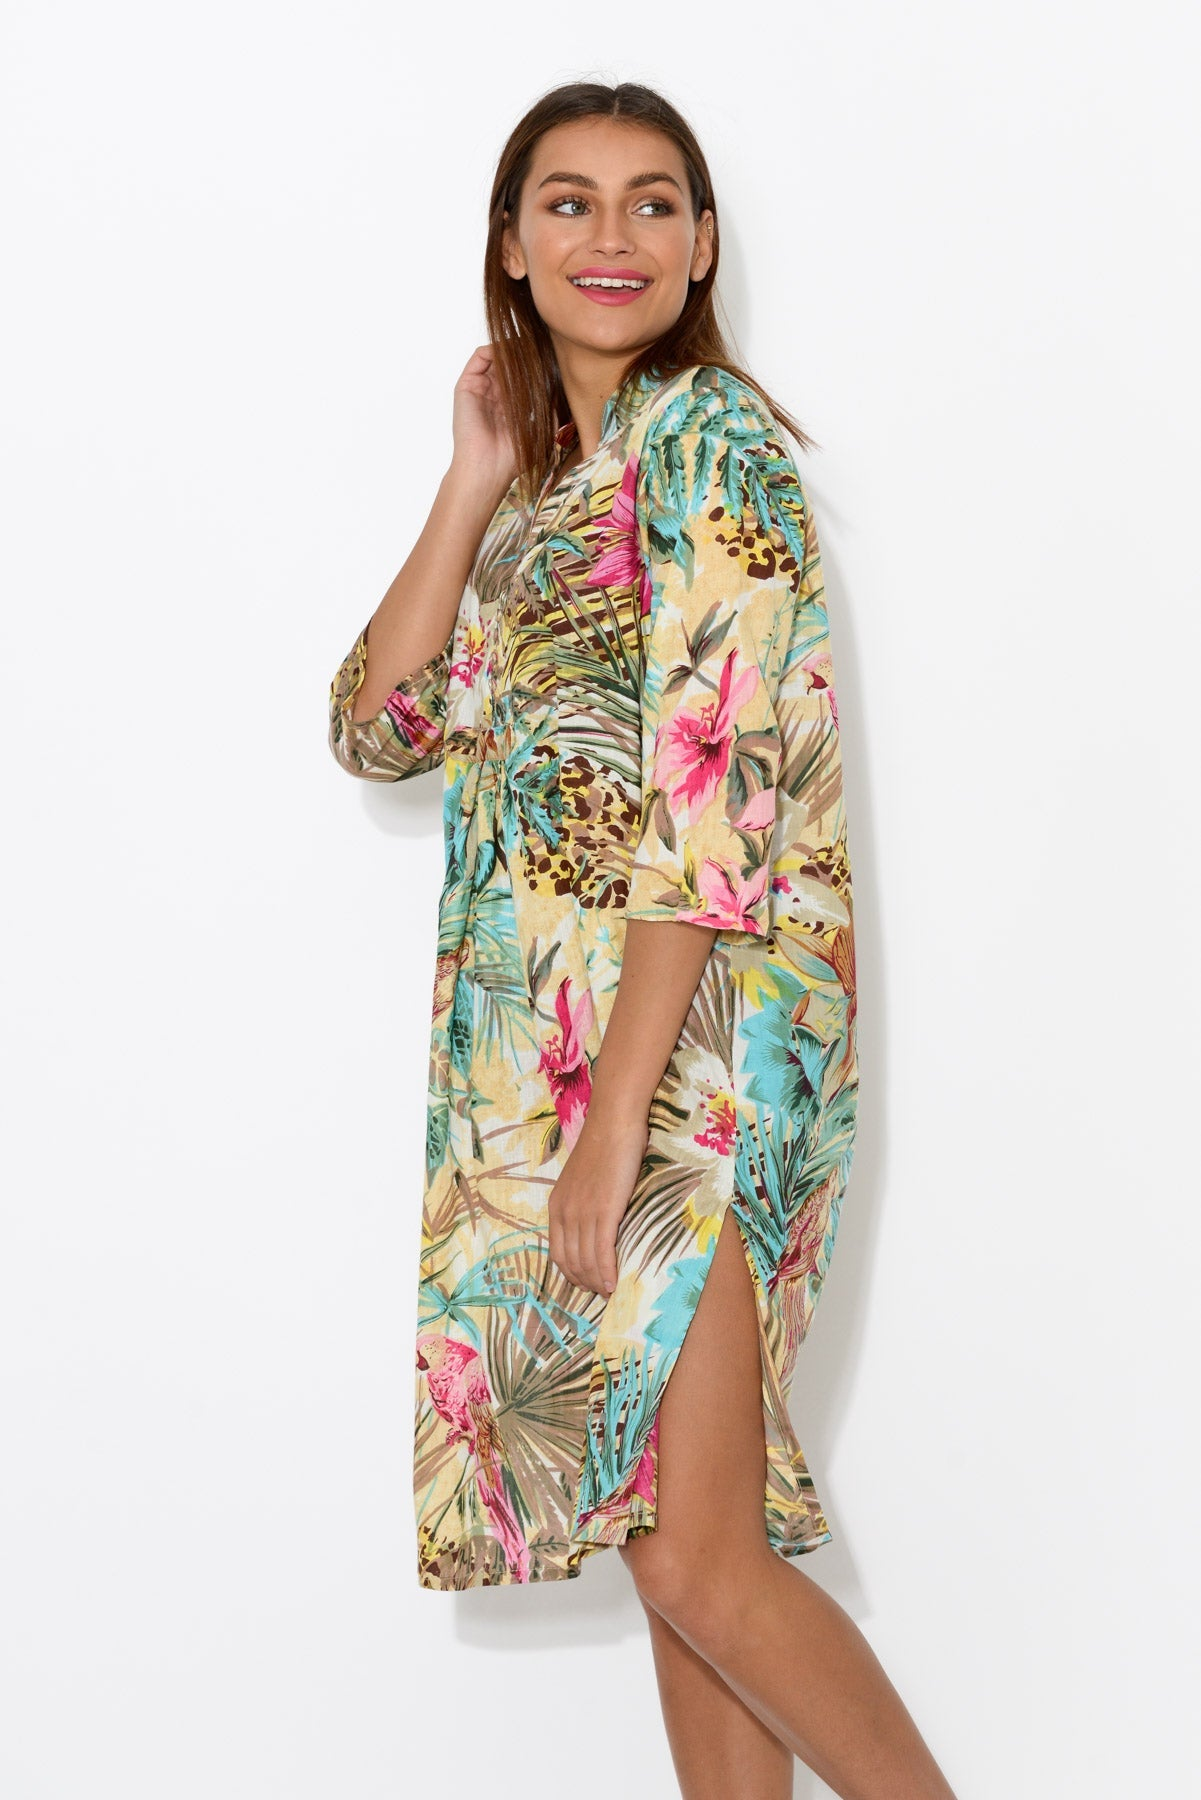 Malolo Desert Tropic Sleeved Cotton Kaftan - Mozaic - Blue Bungalow Online